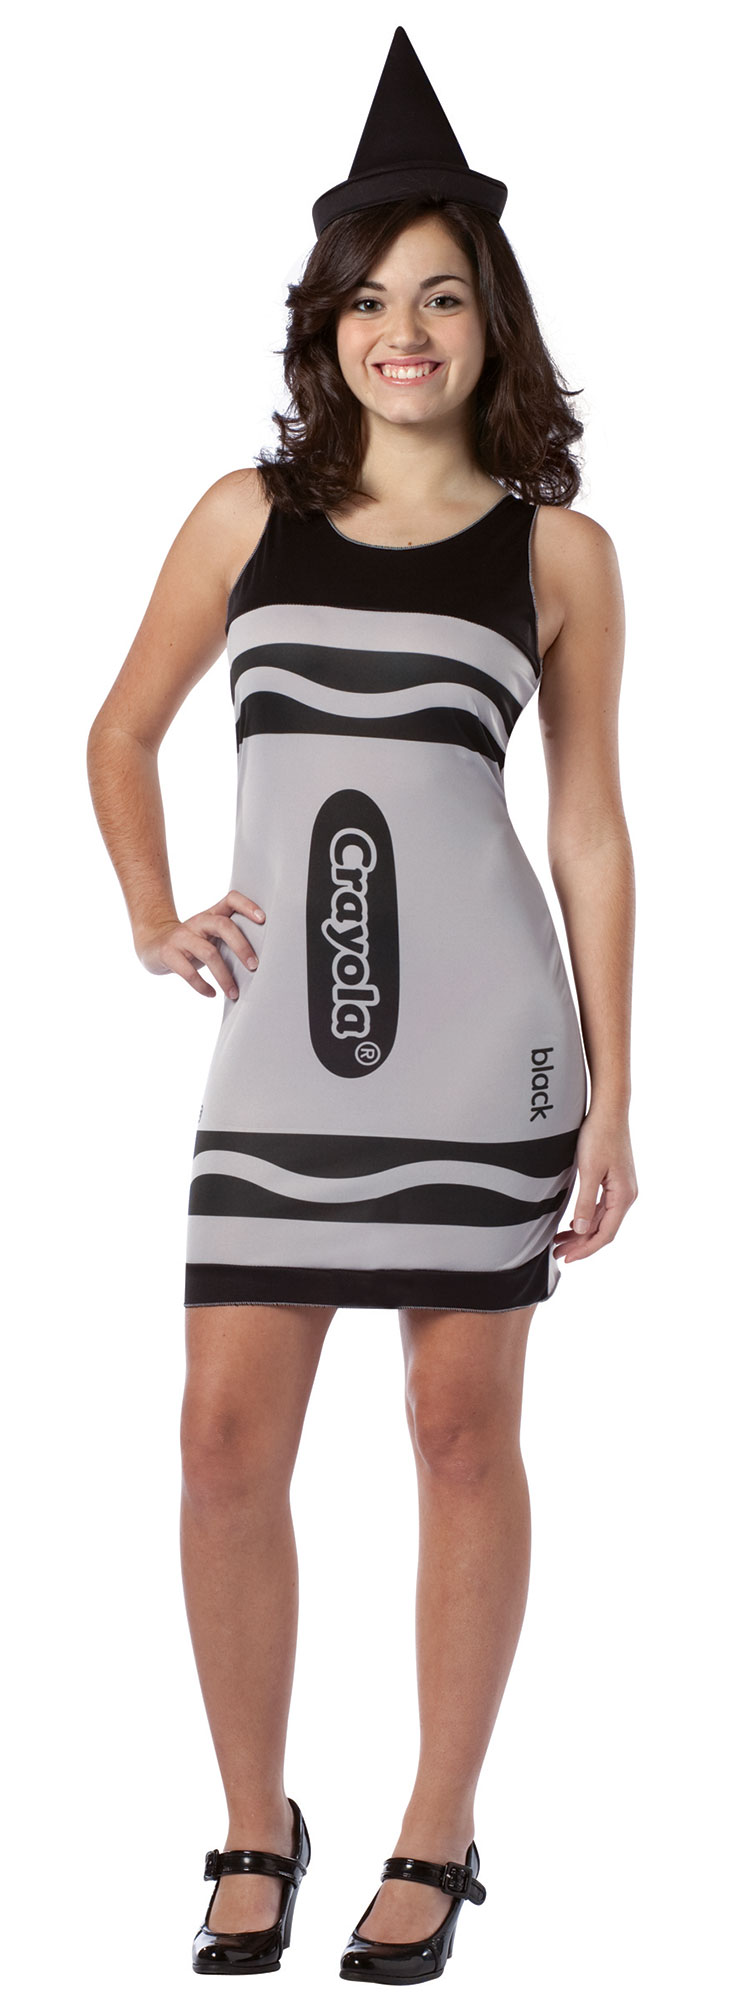 Black Crayola Costume Dress For Teen